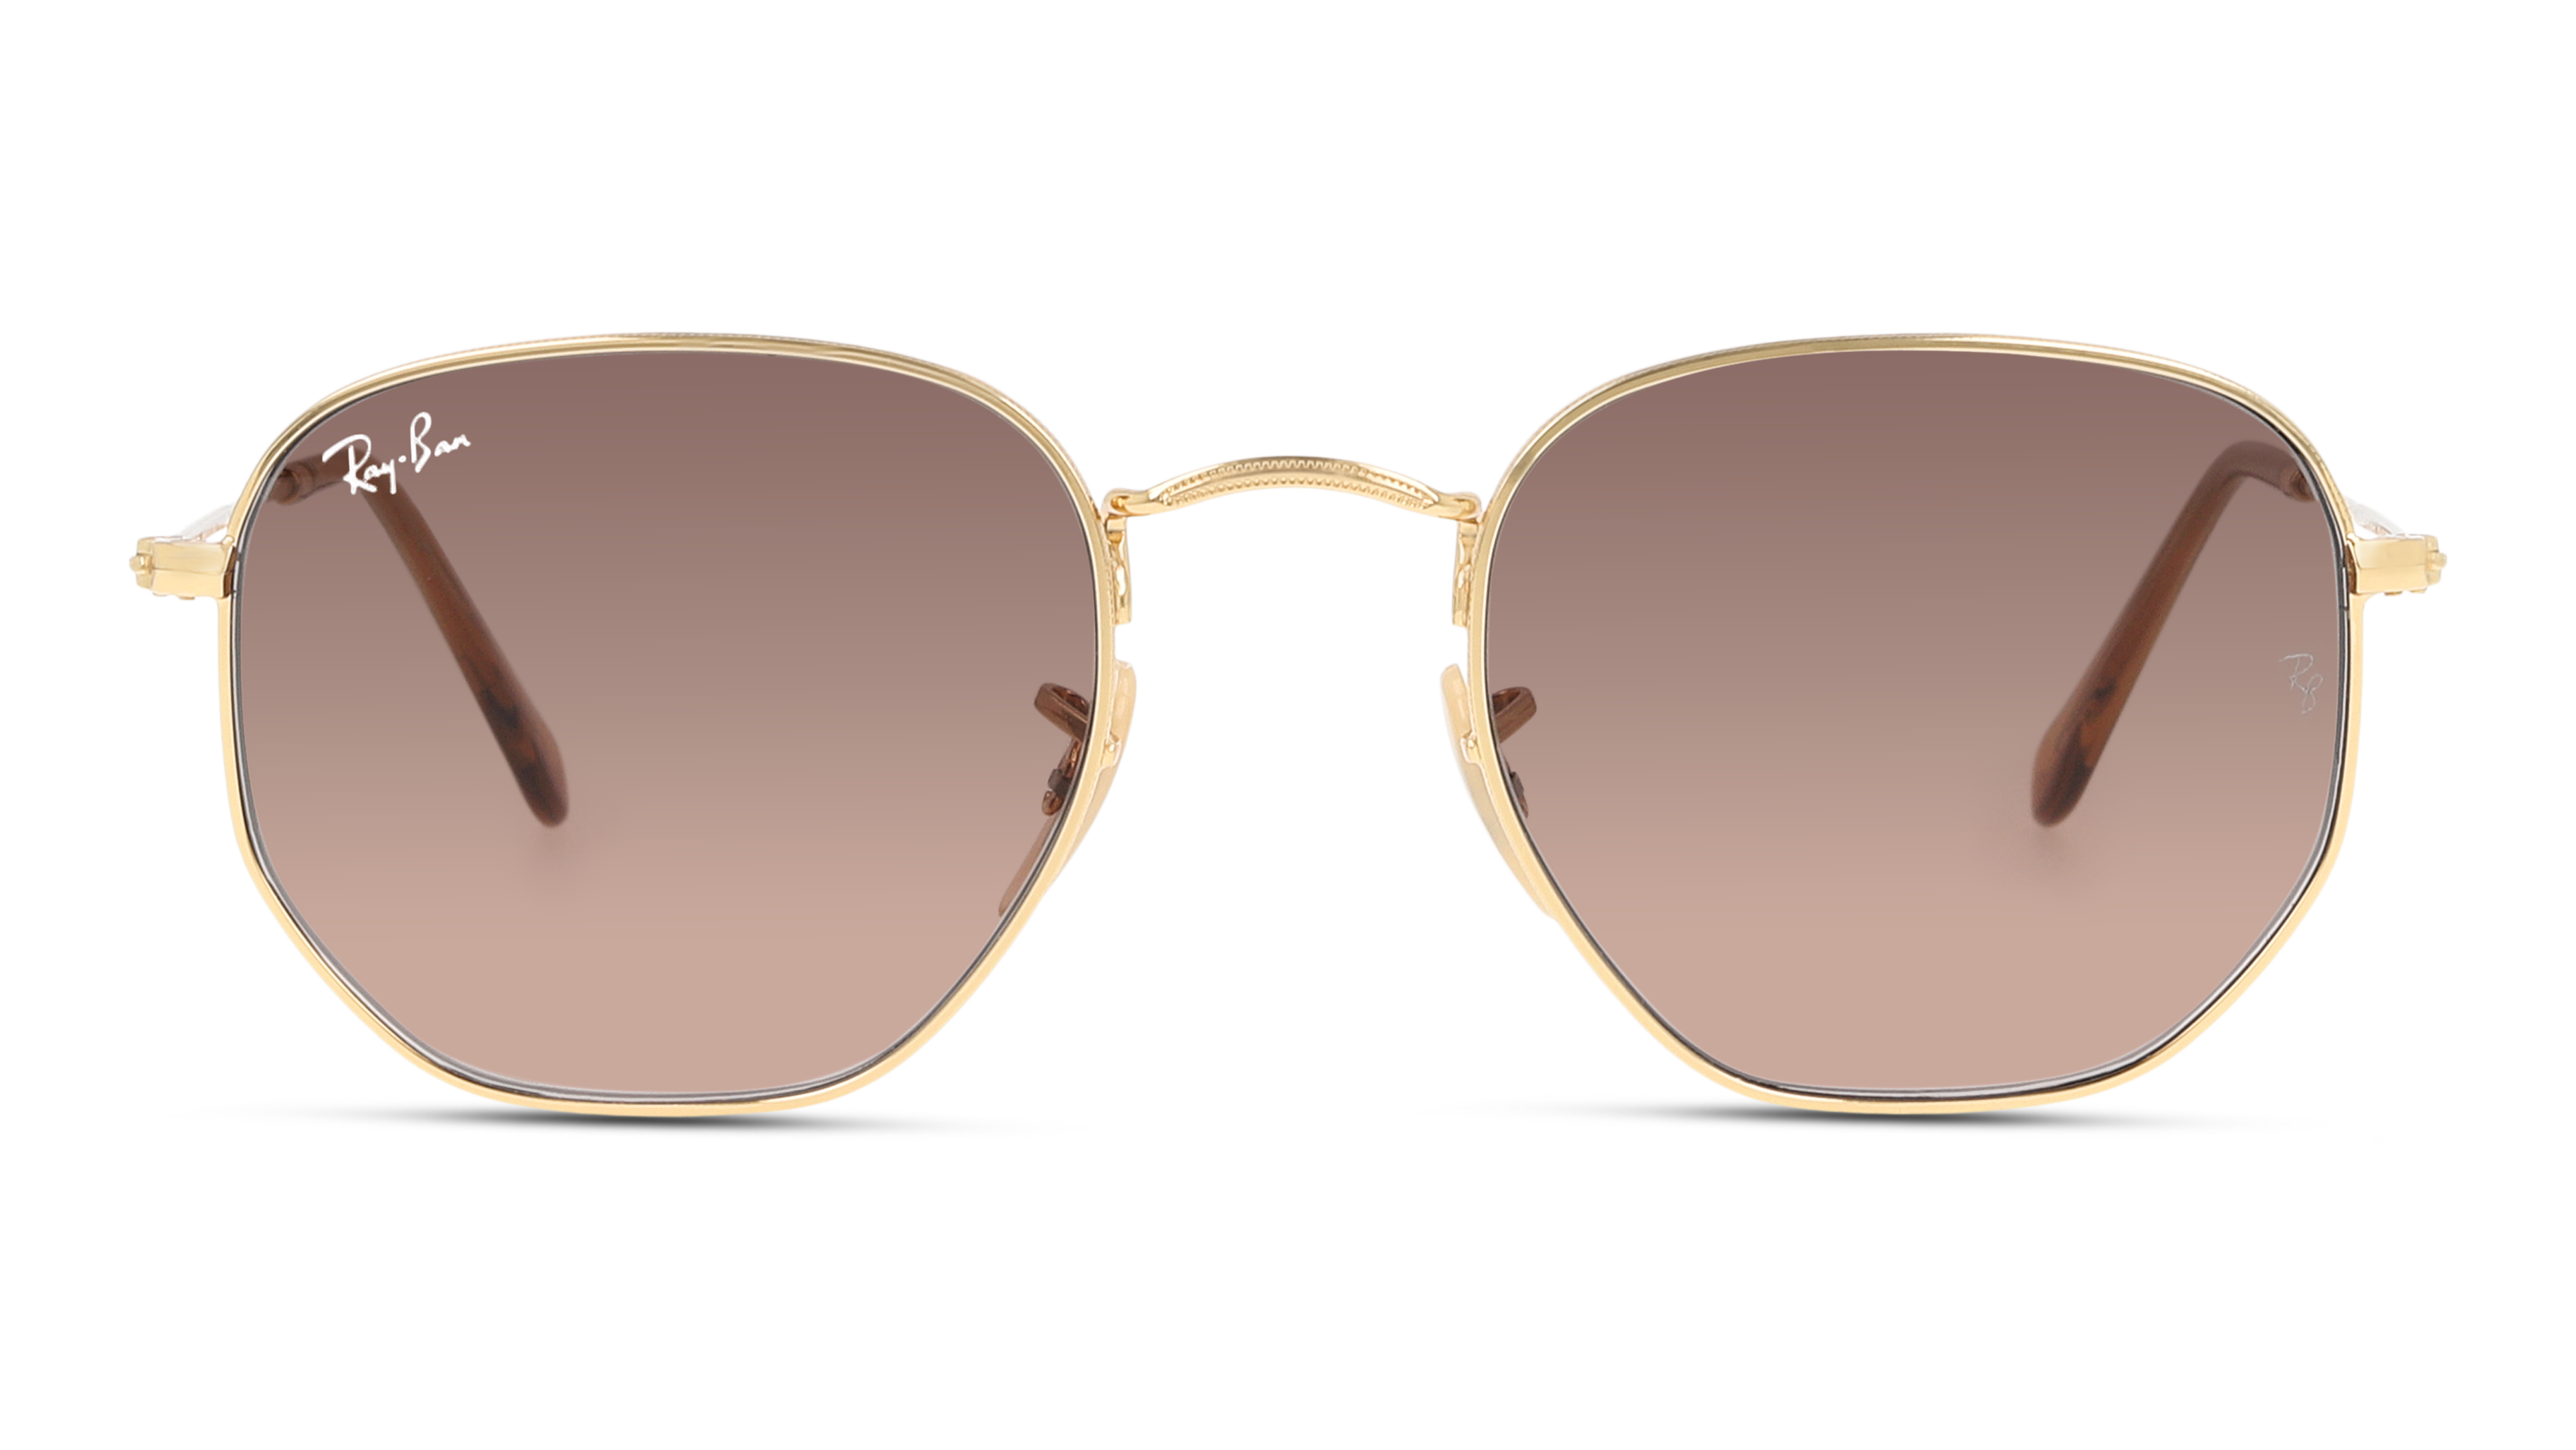 Front Ray-Ban Ray-Ban 0RB3548N 912443 48/21 Goud/Bruin